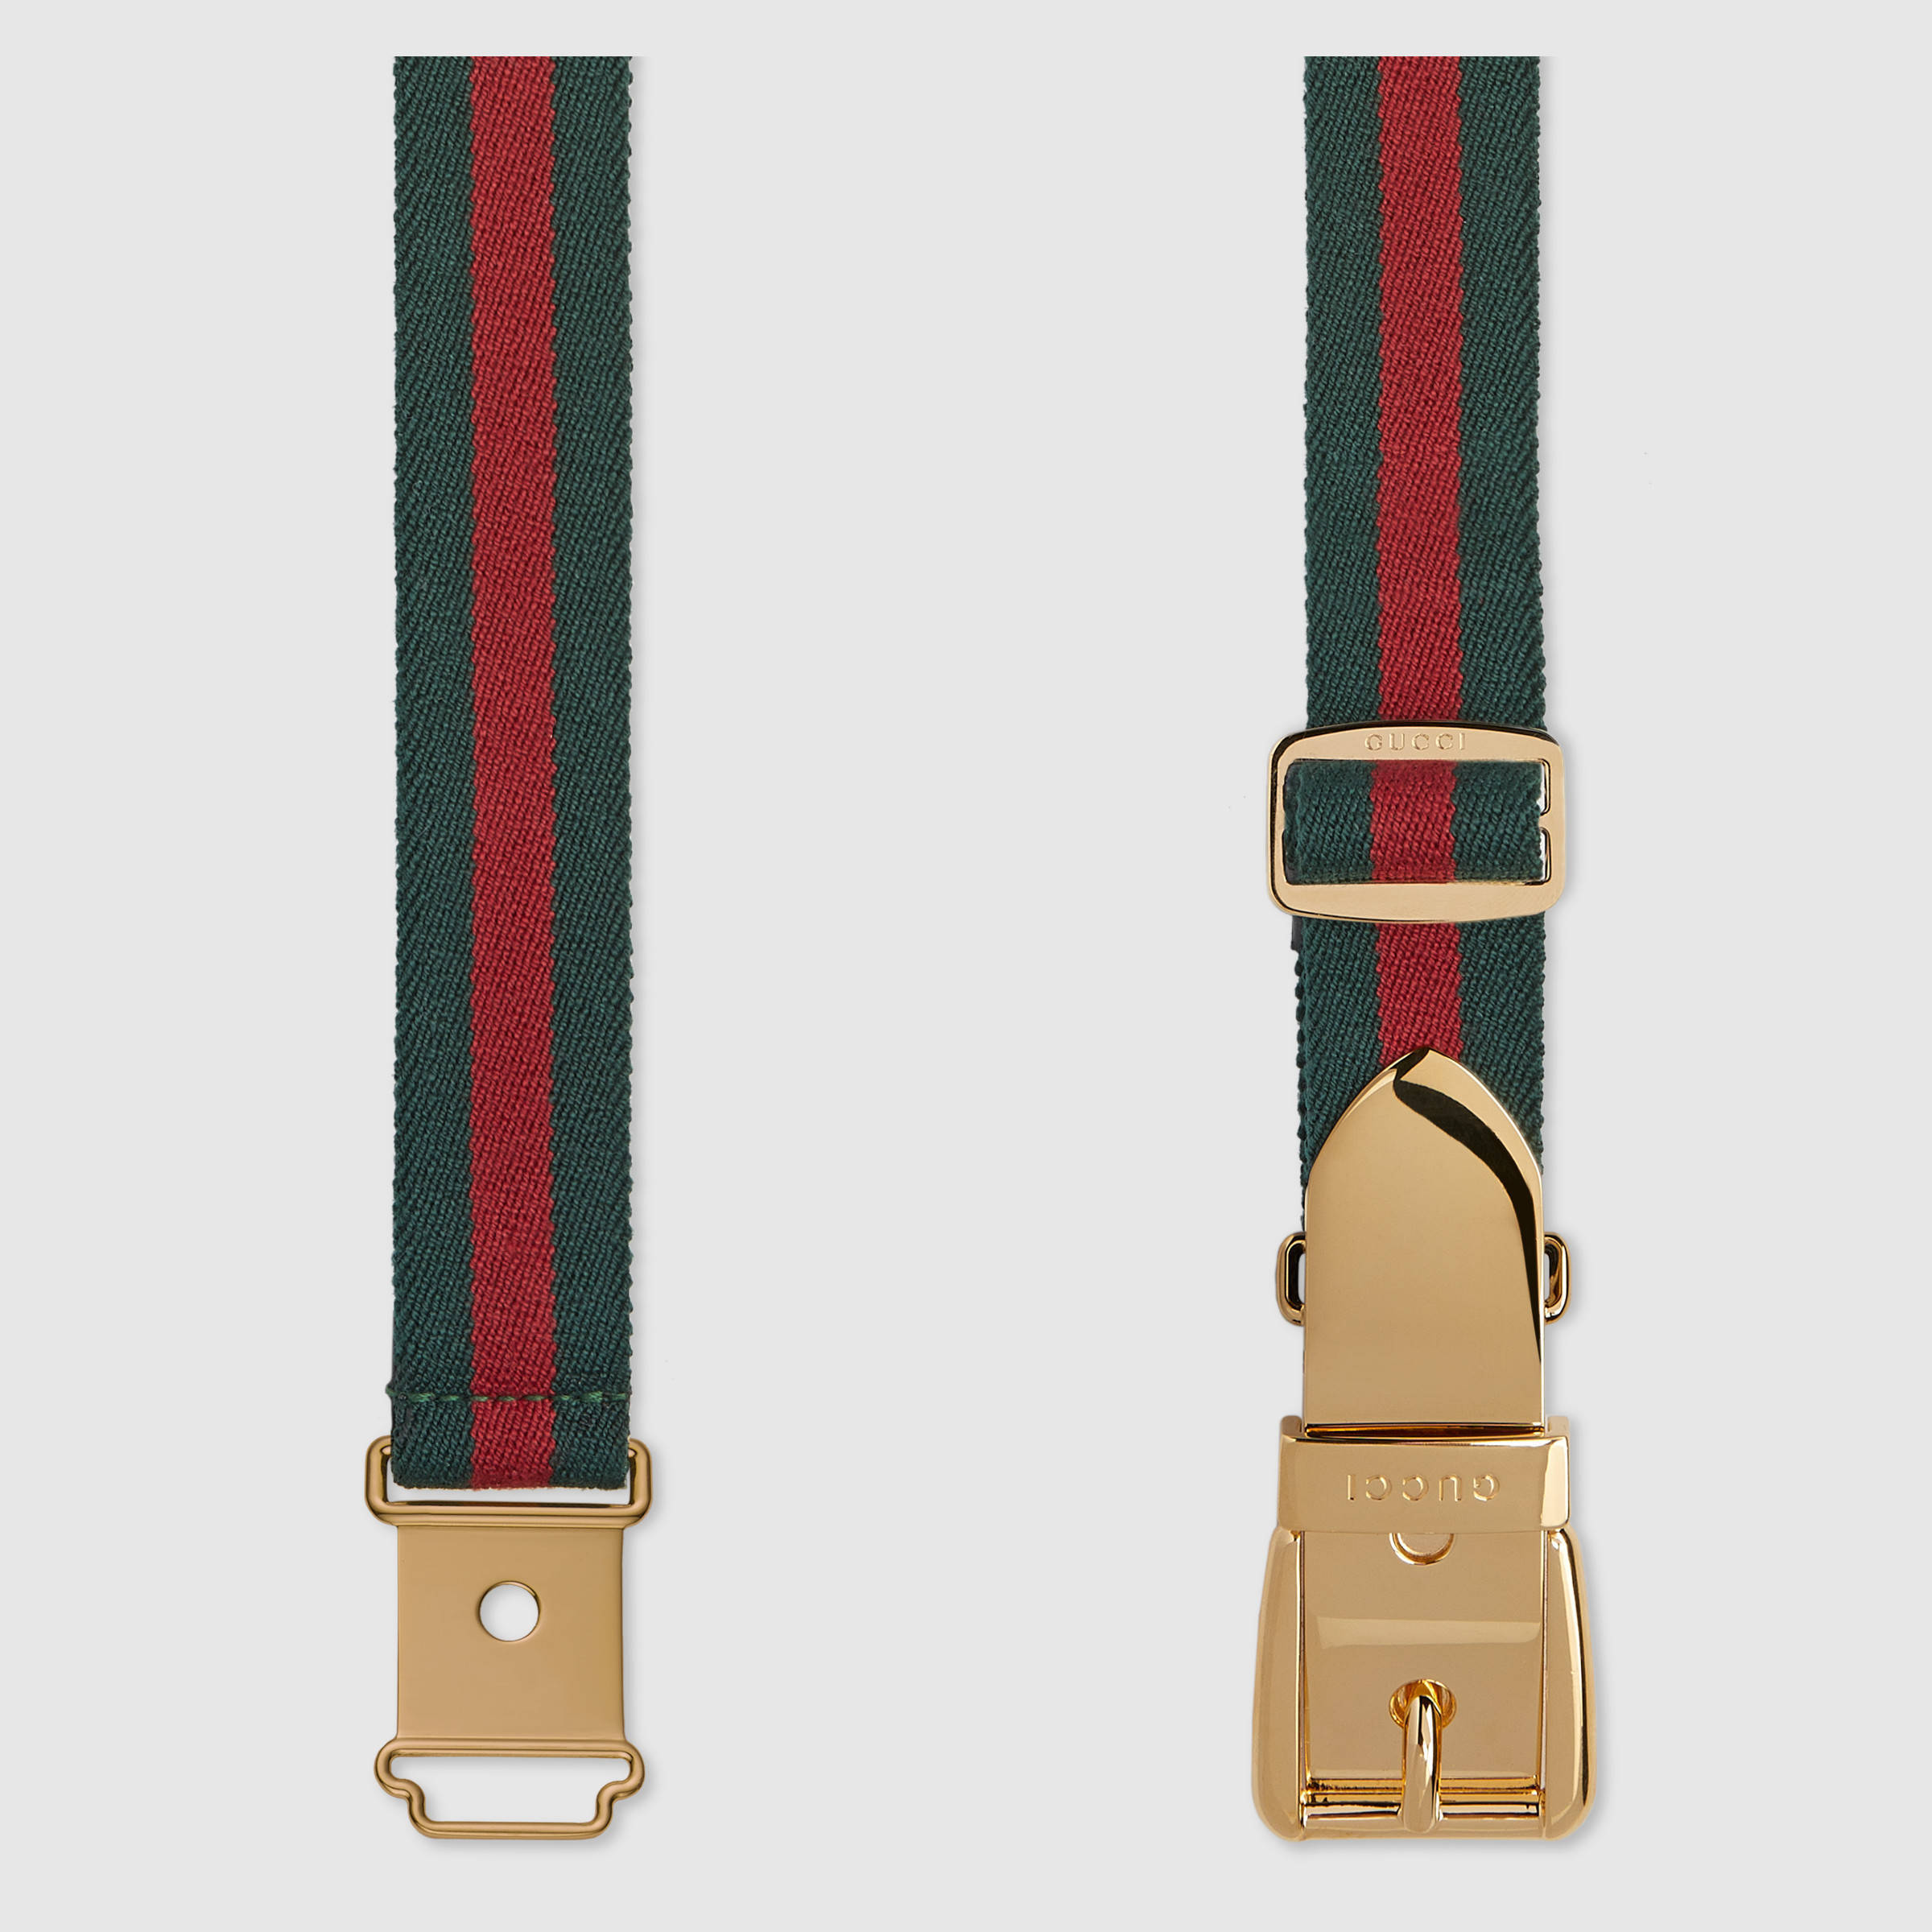 【グッチ】Web Belt With Square Buckle ベルト